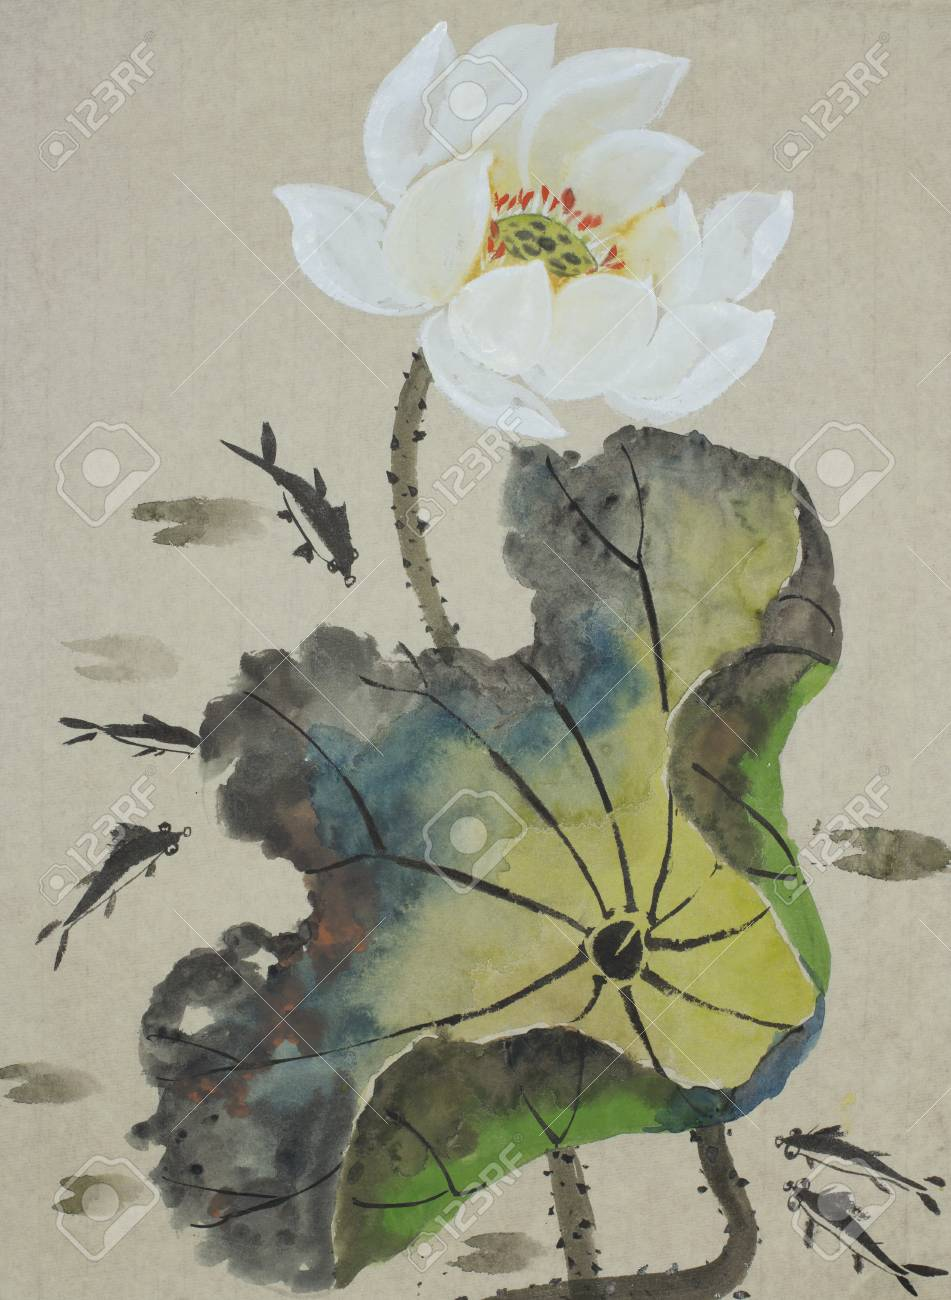 Lotus flower and fishes painted in chinese style stock photo lotus flower and fishes painted in chinese style stock photo 85893235 izmirmasajfo